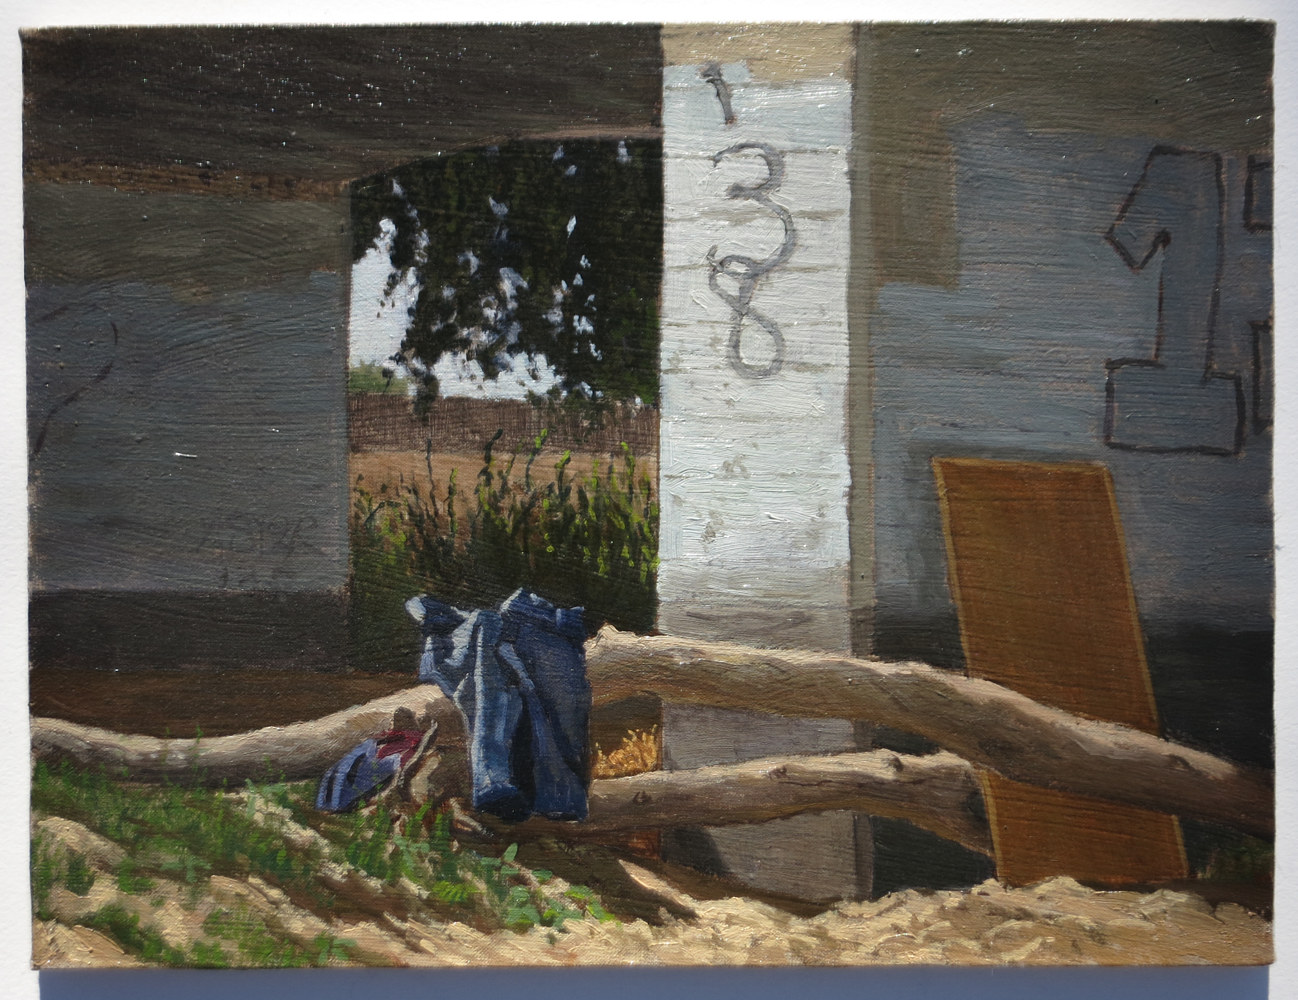 Oil painting St Johns Riverbed at Ben Maddox Way by Amie Rangel